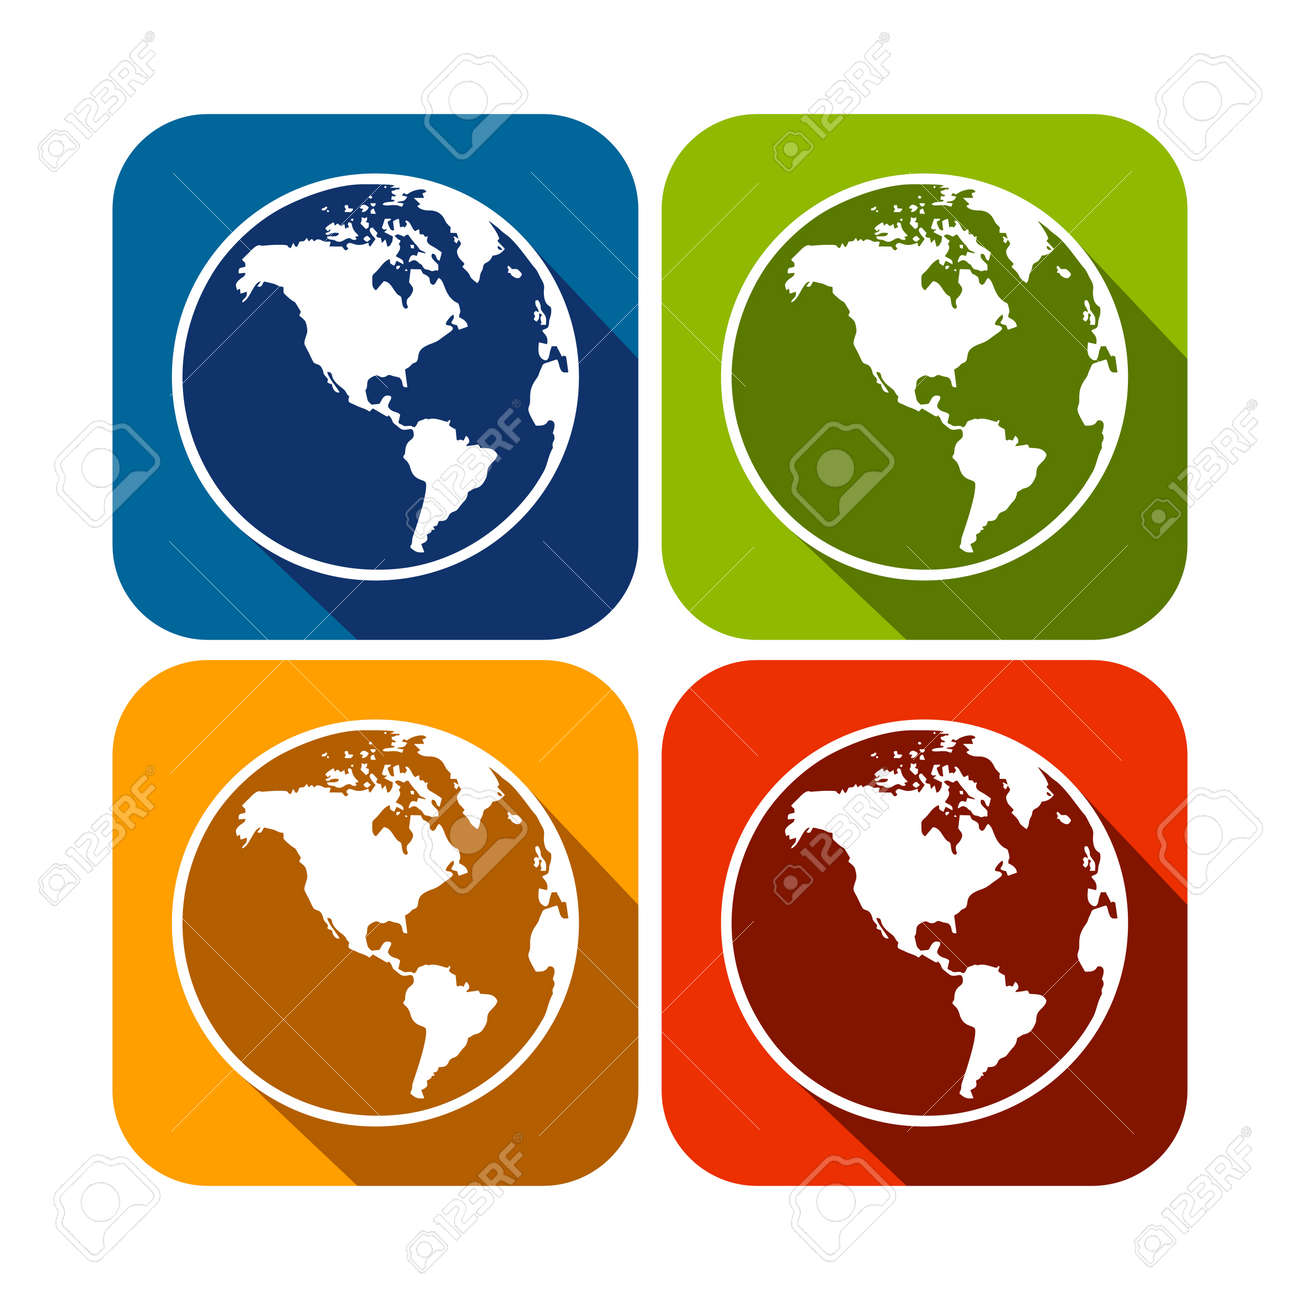 america continent map globe square flat icons royalty free cliparts